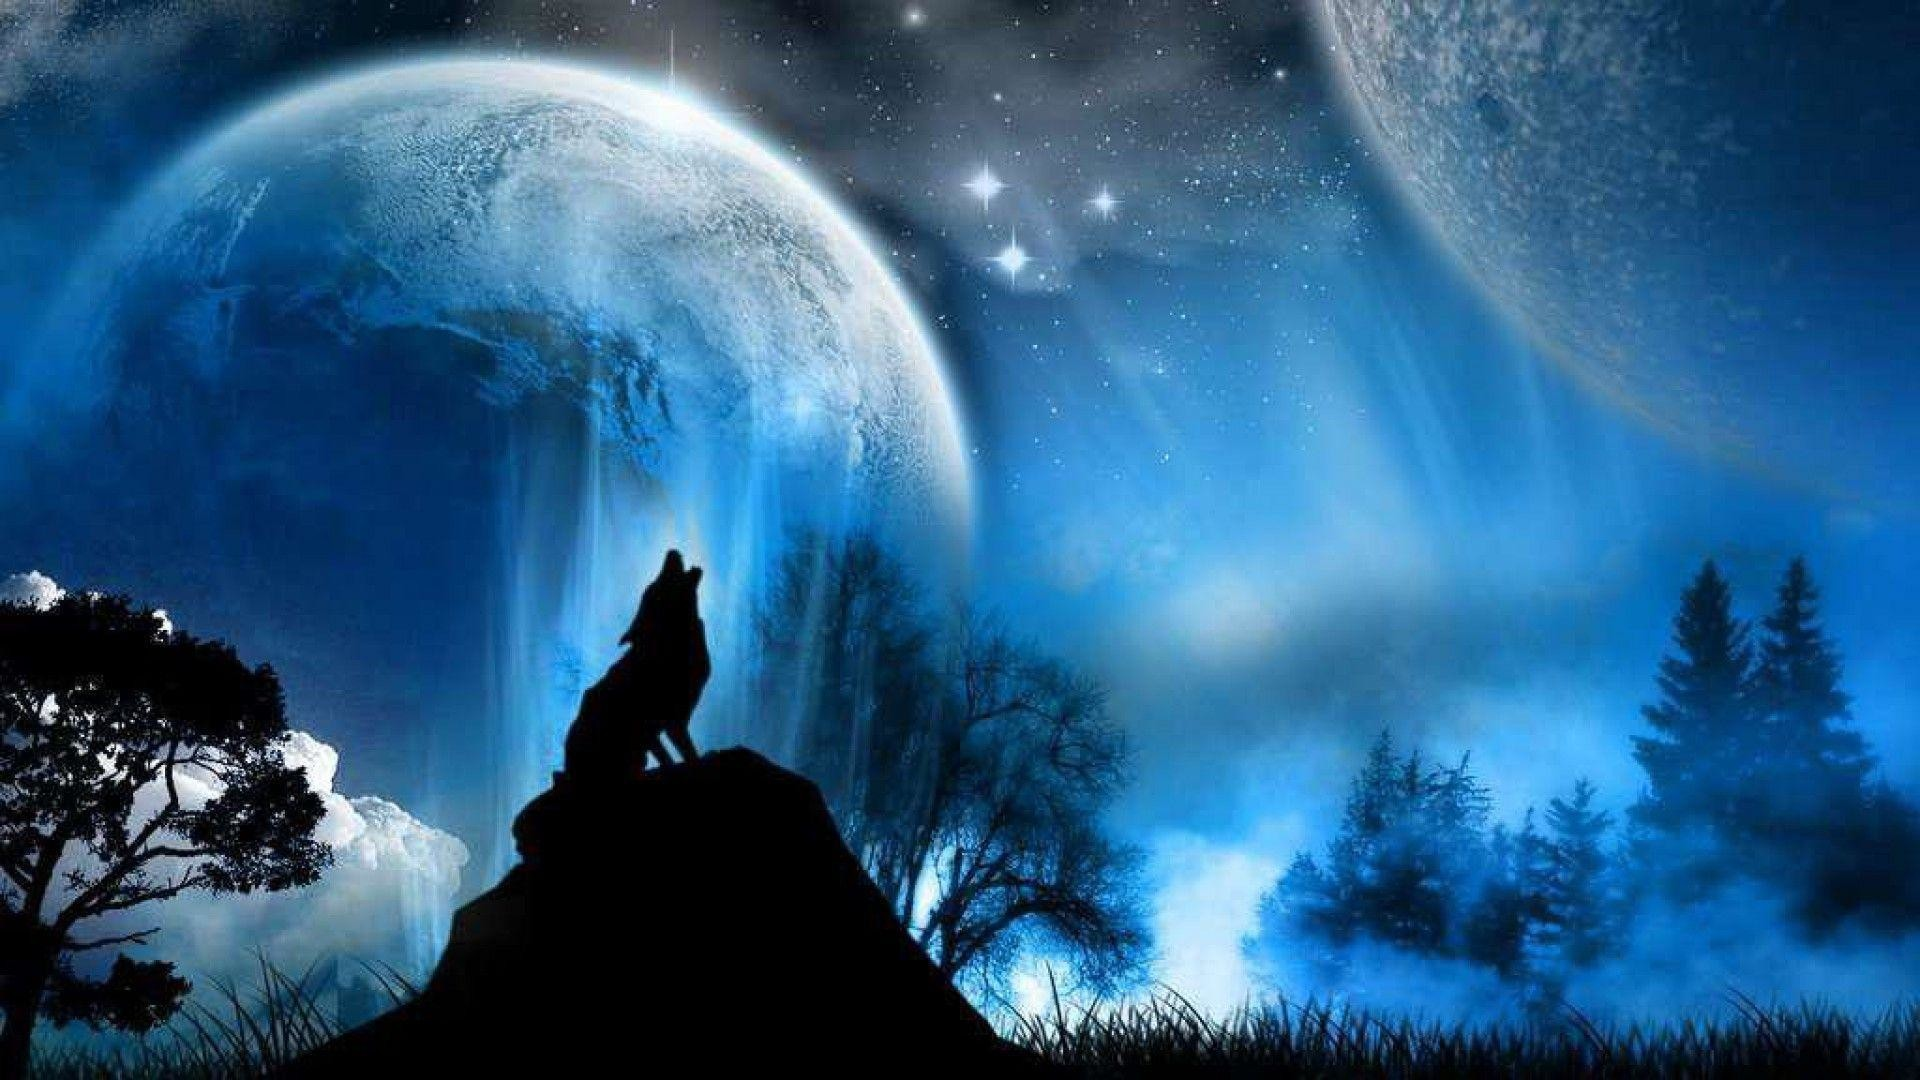 1920x1080 Wolf Wallpaper Hd 1080p Desktop #1223 Wallpaper | walldesktophd.